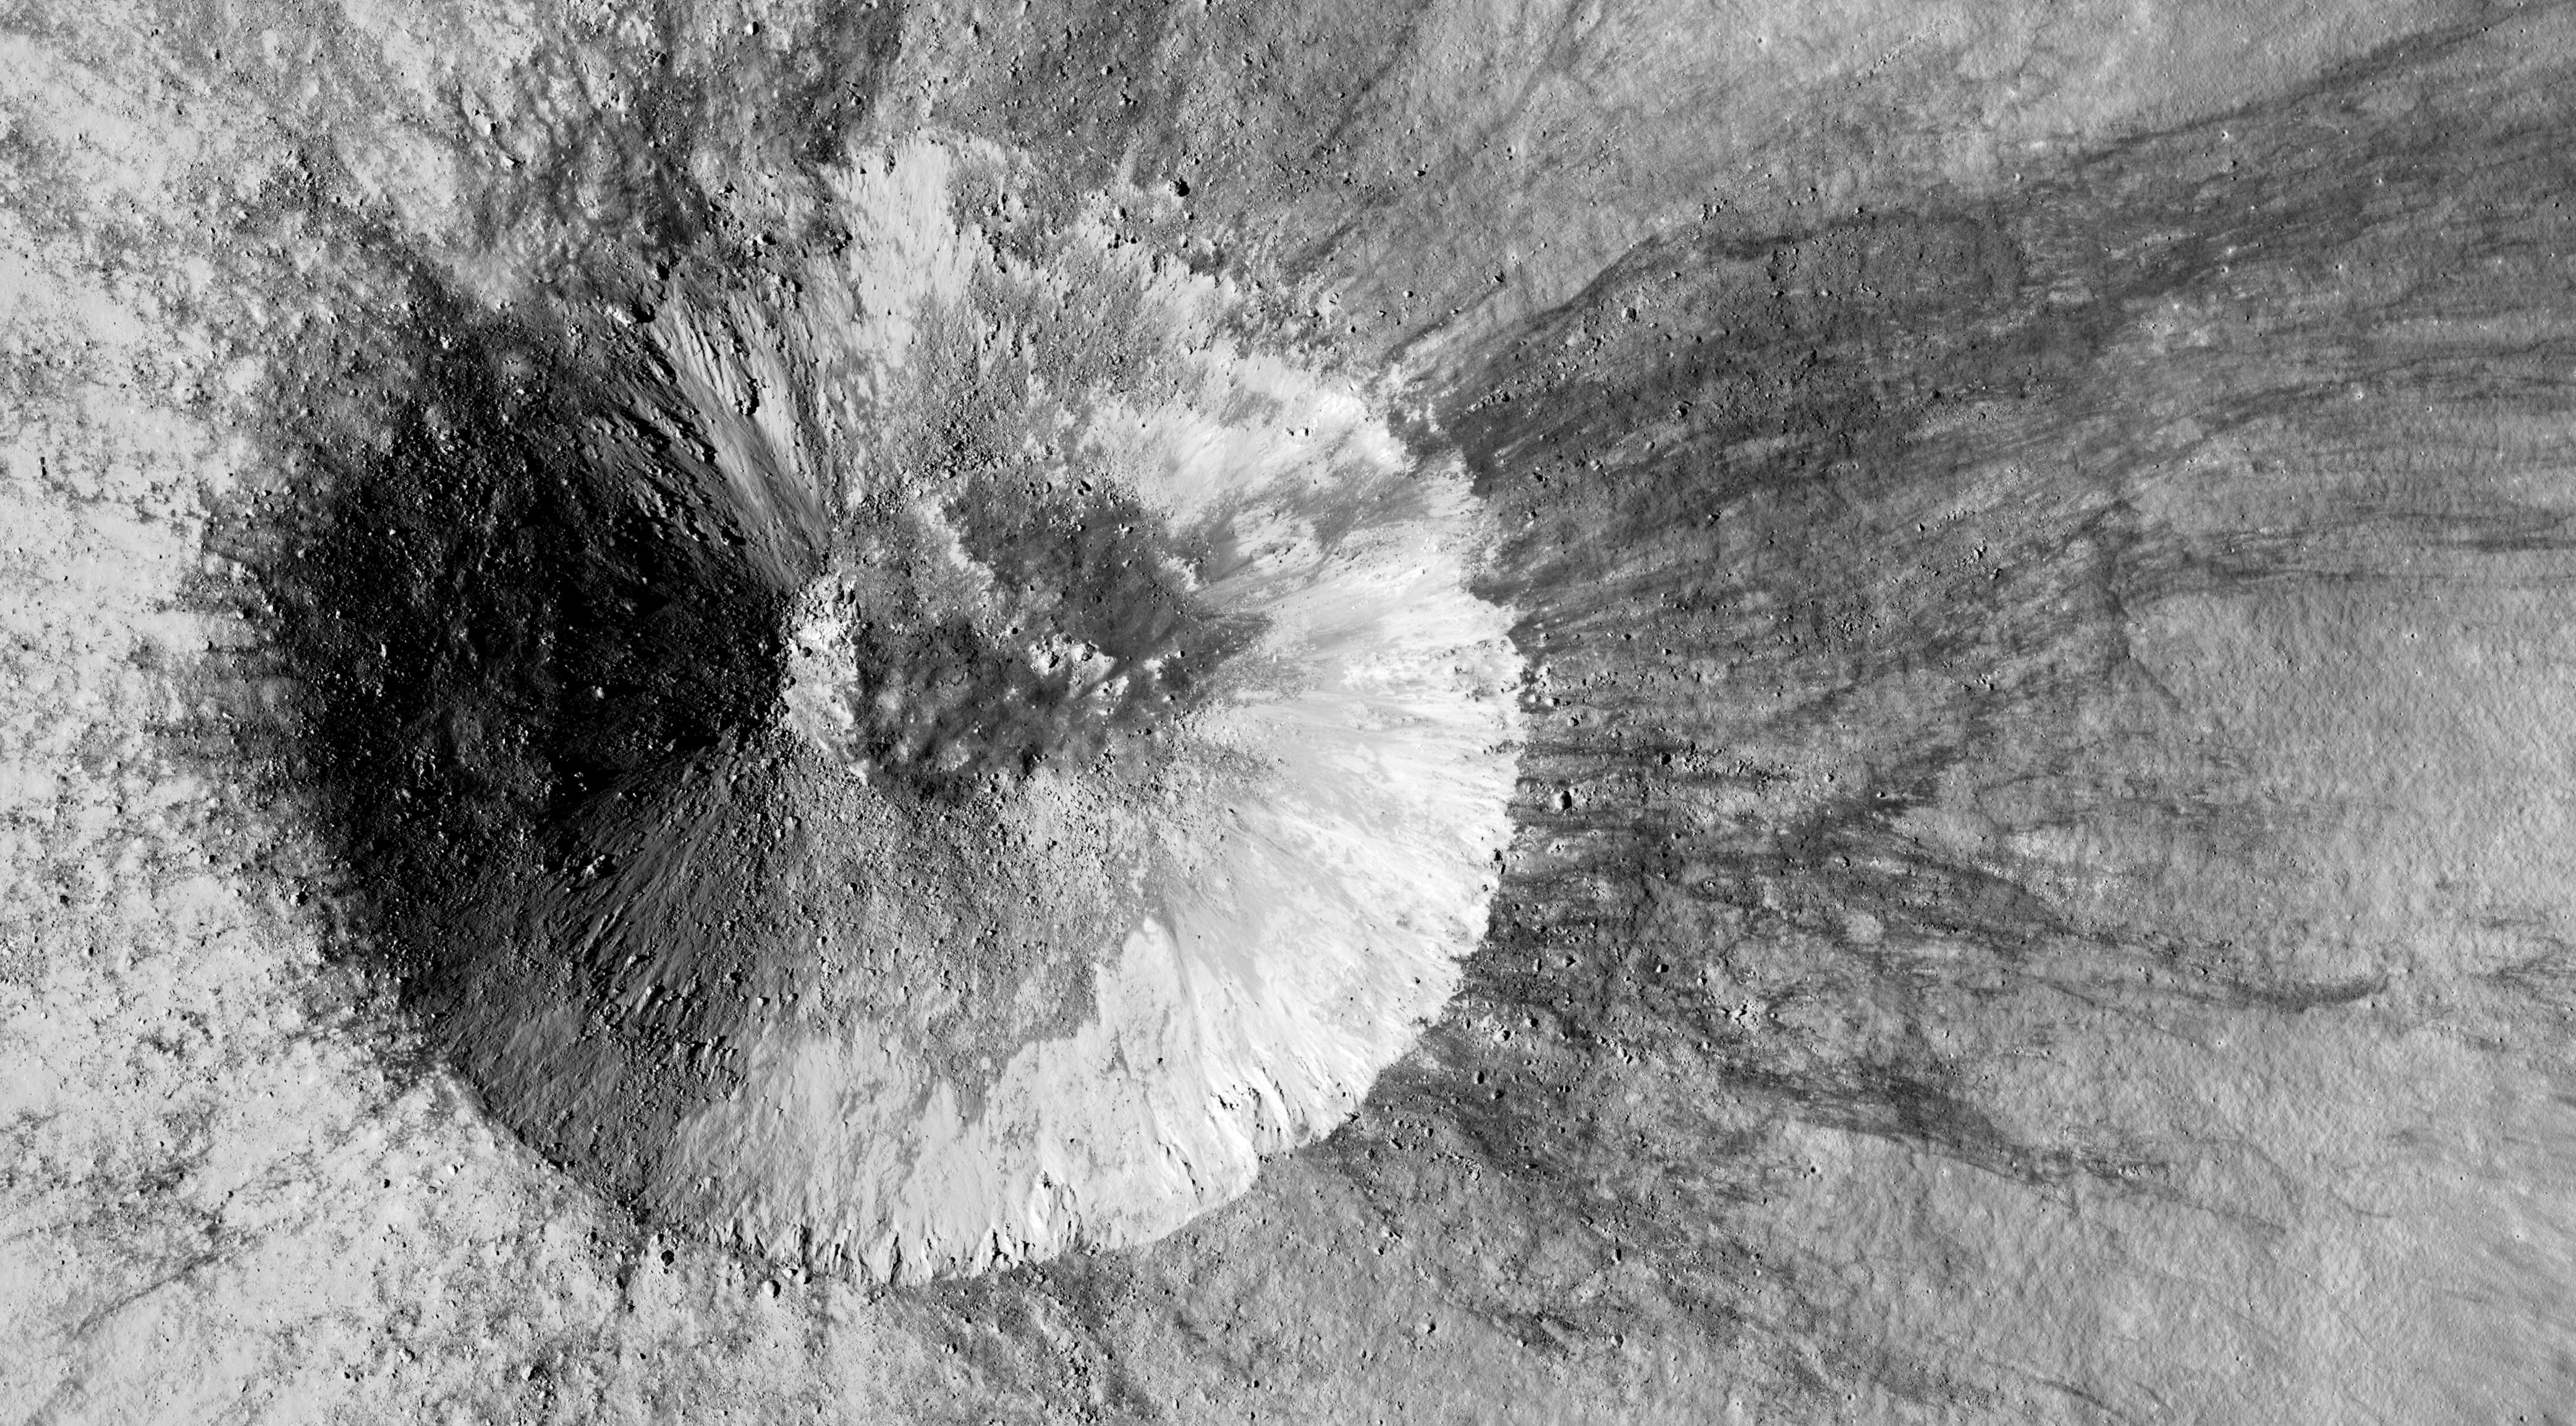 best website 08783 0b4e4 The science team from Lunar Reconnaissance Orbiter (LRO) today released a  new image, taken on November 3, 2018, of a relatively young small crater  not ...